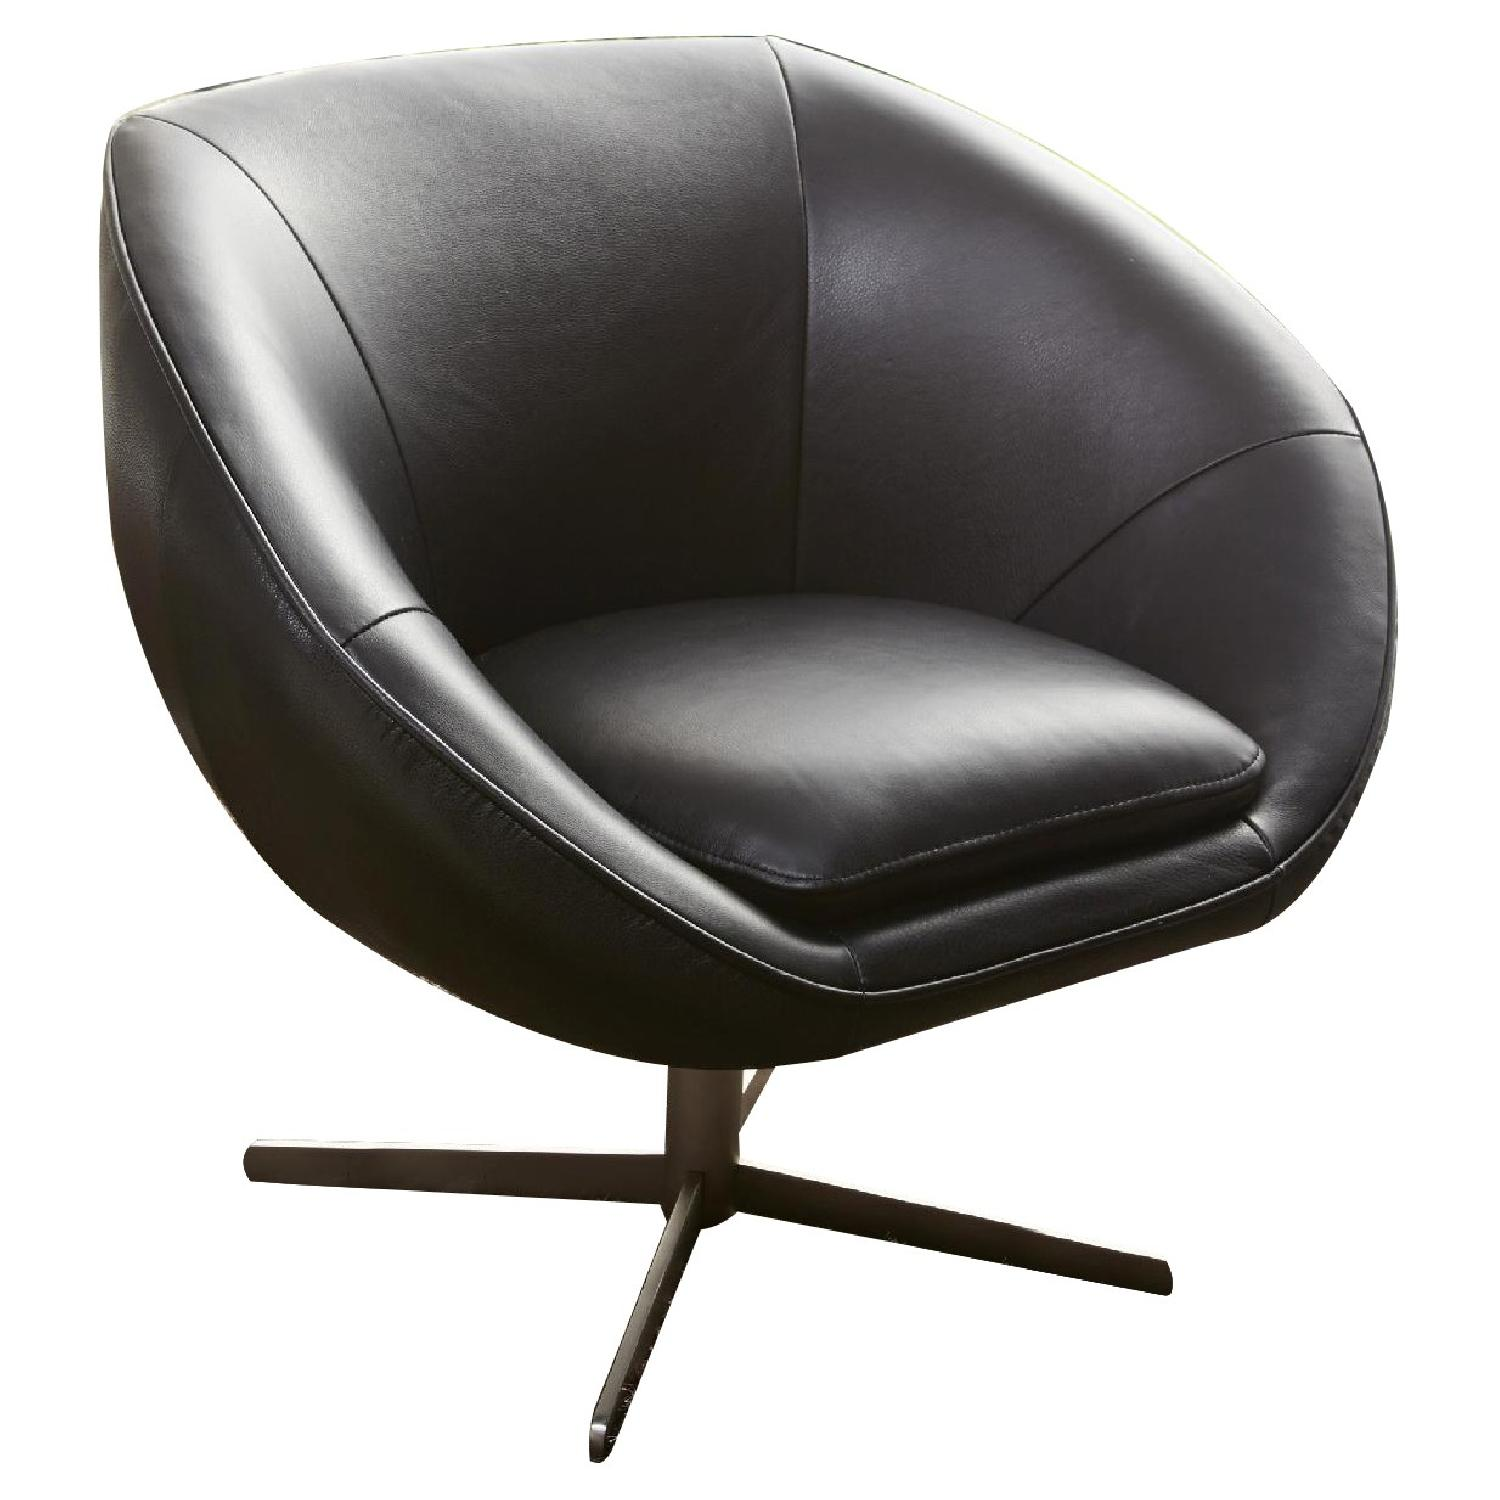 Modern Swivel Accent Chair in Black Premium Leather w